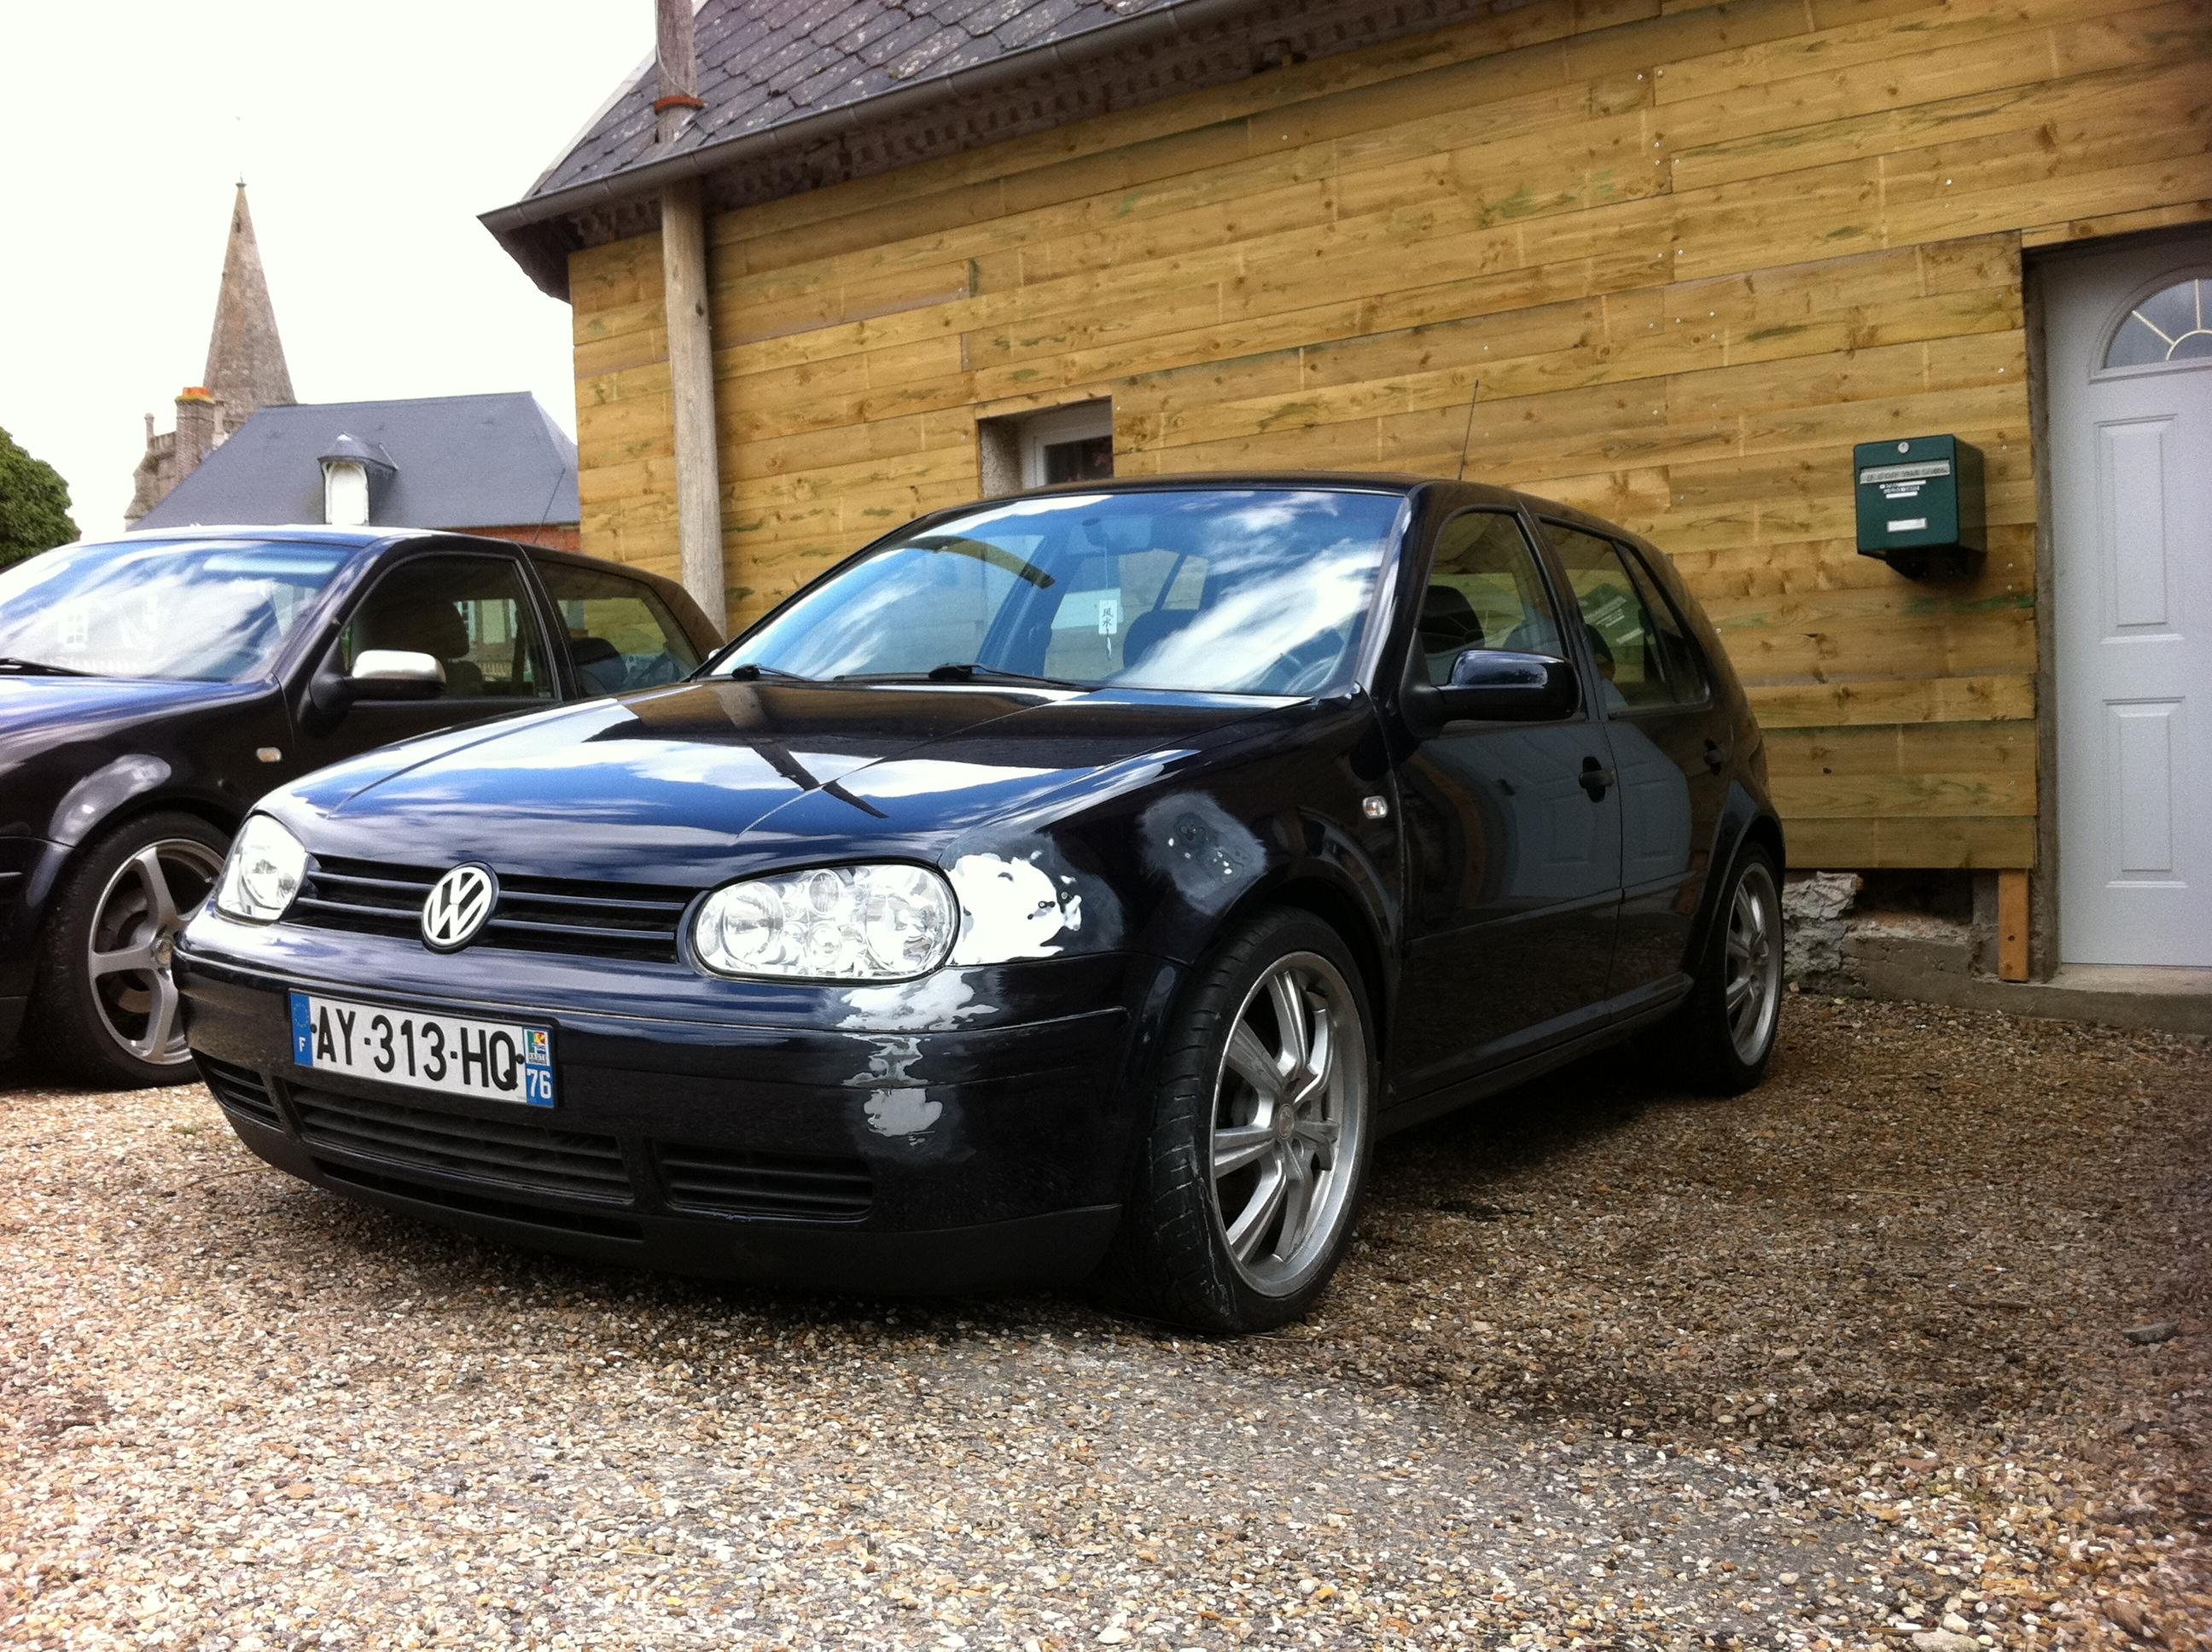 vw golf iv tdi 150 gti 19 garage des golf iv tdi 150 page 2 forum volkswagen golf iv. Black Bedroom Furniture Sets. Home Design Ideas